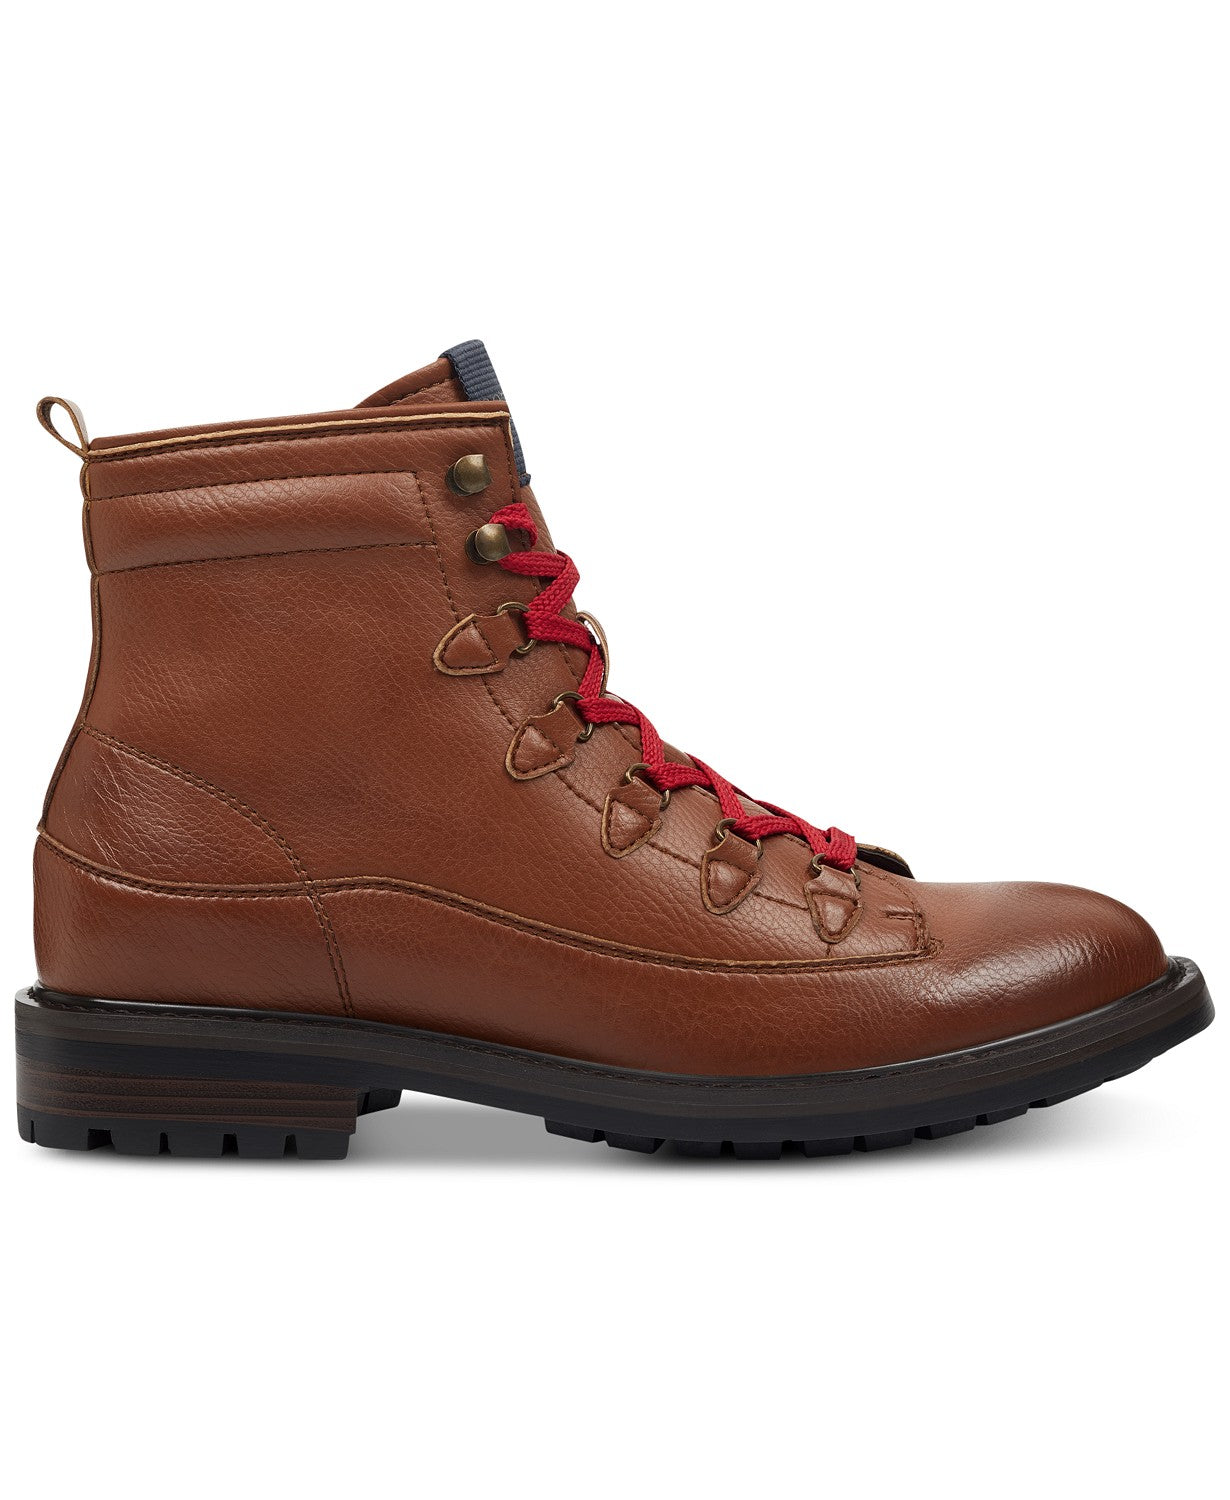 GUESS Men's Ruskin Alpine Boots